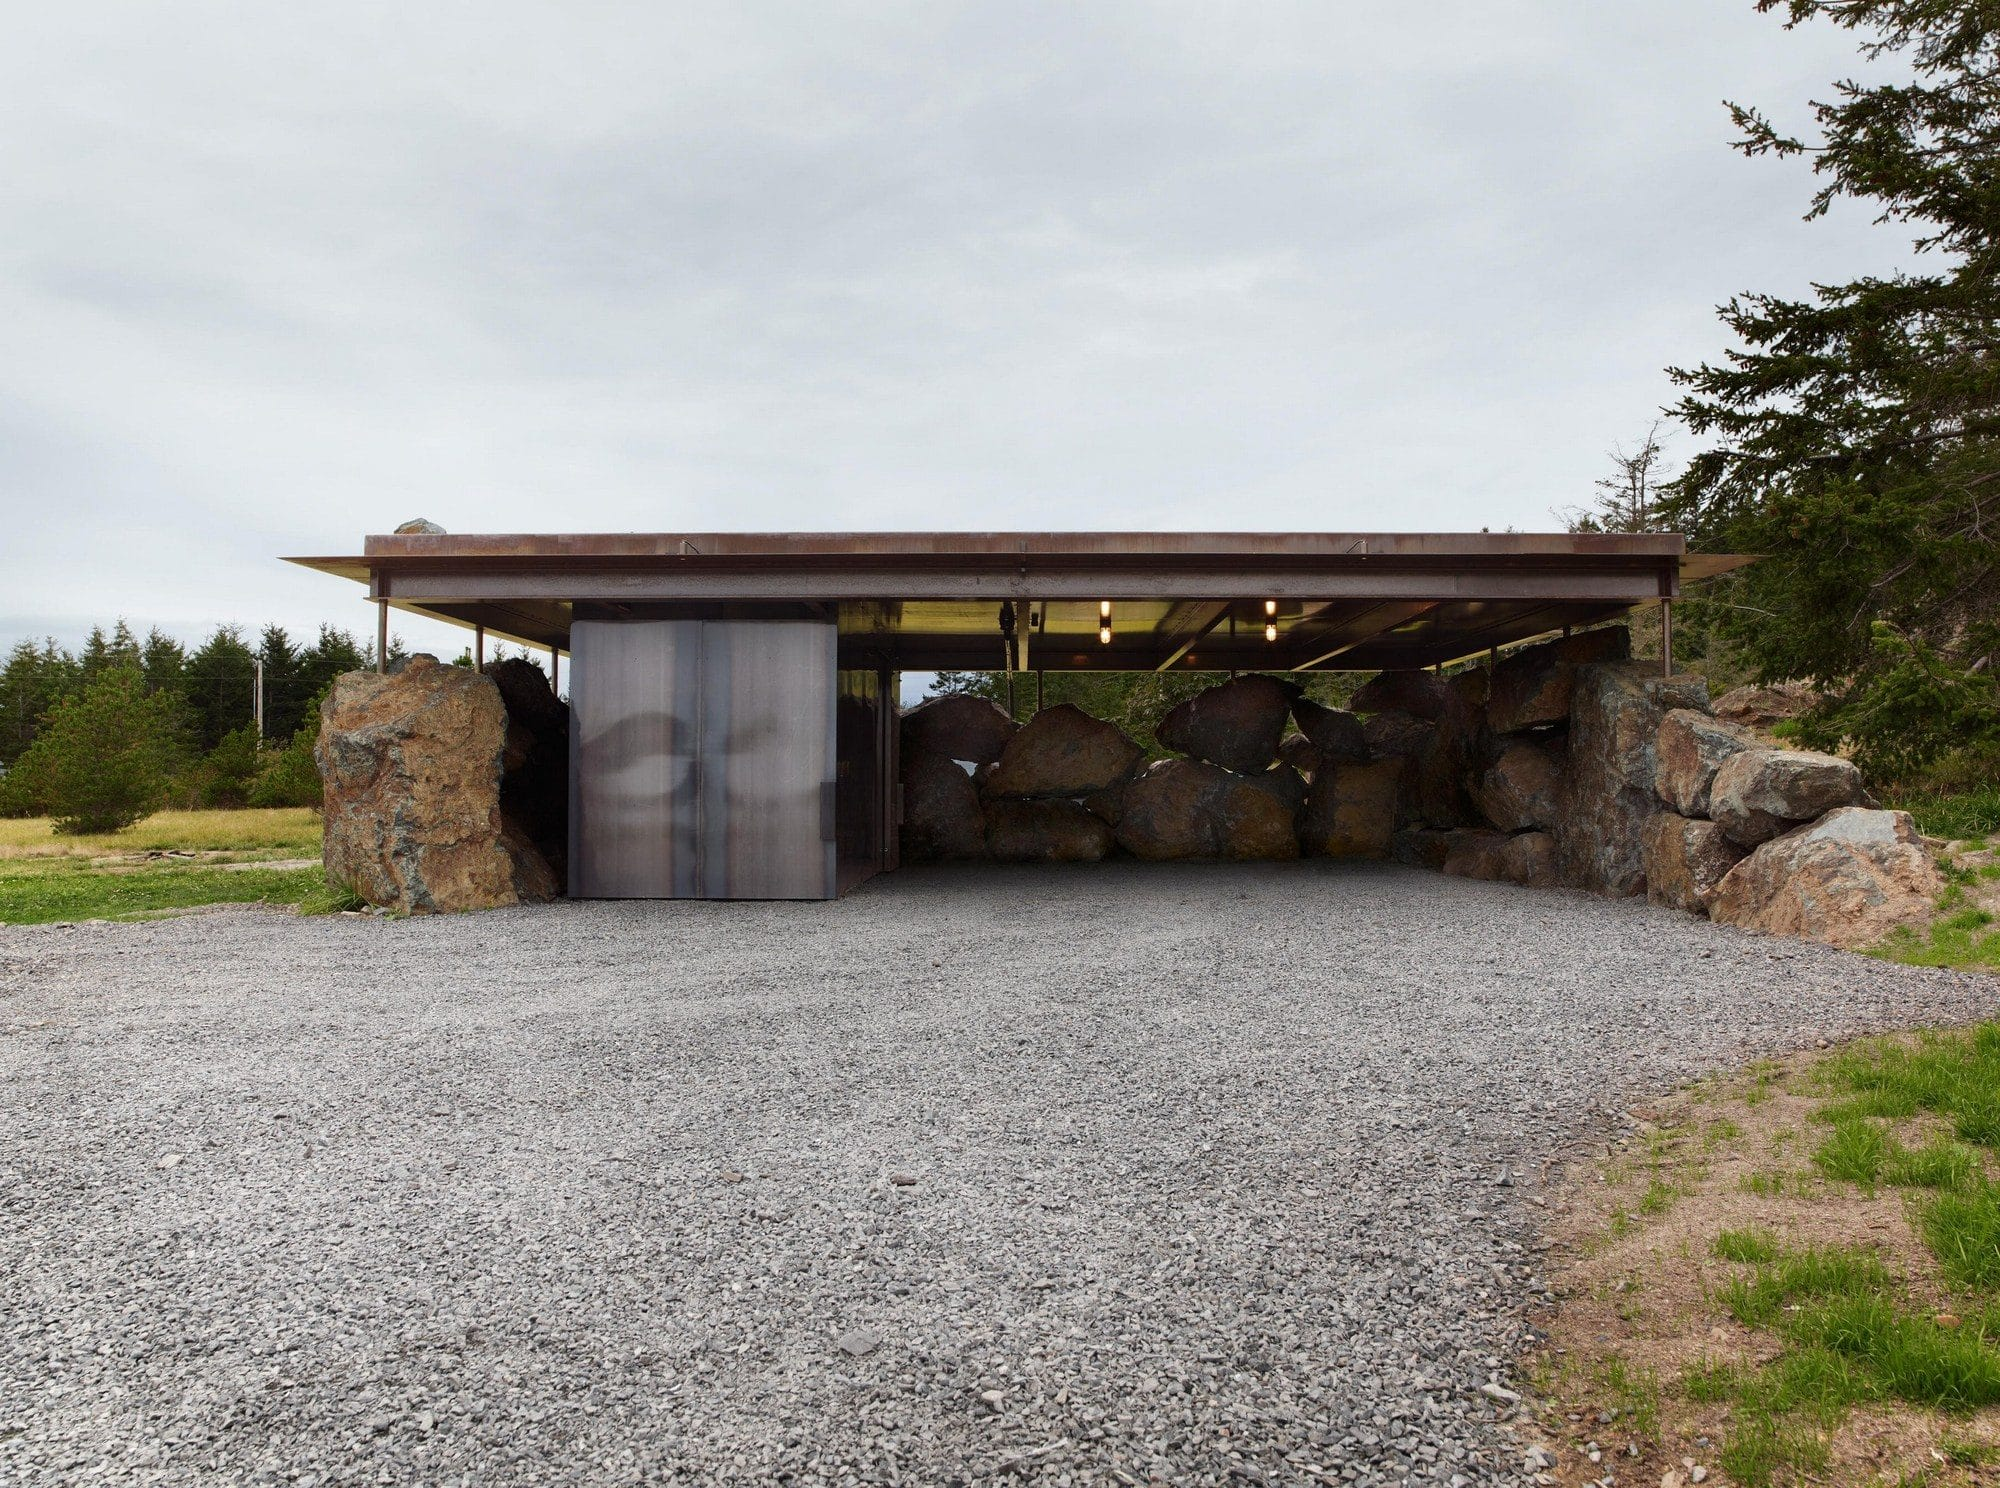 Дом в камне от Olson Kundig Architects, HQ architecture, HQarch, HQ arch, high quality architecture